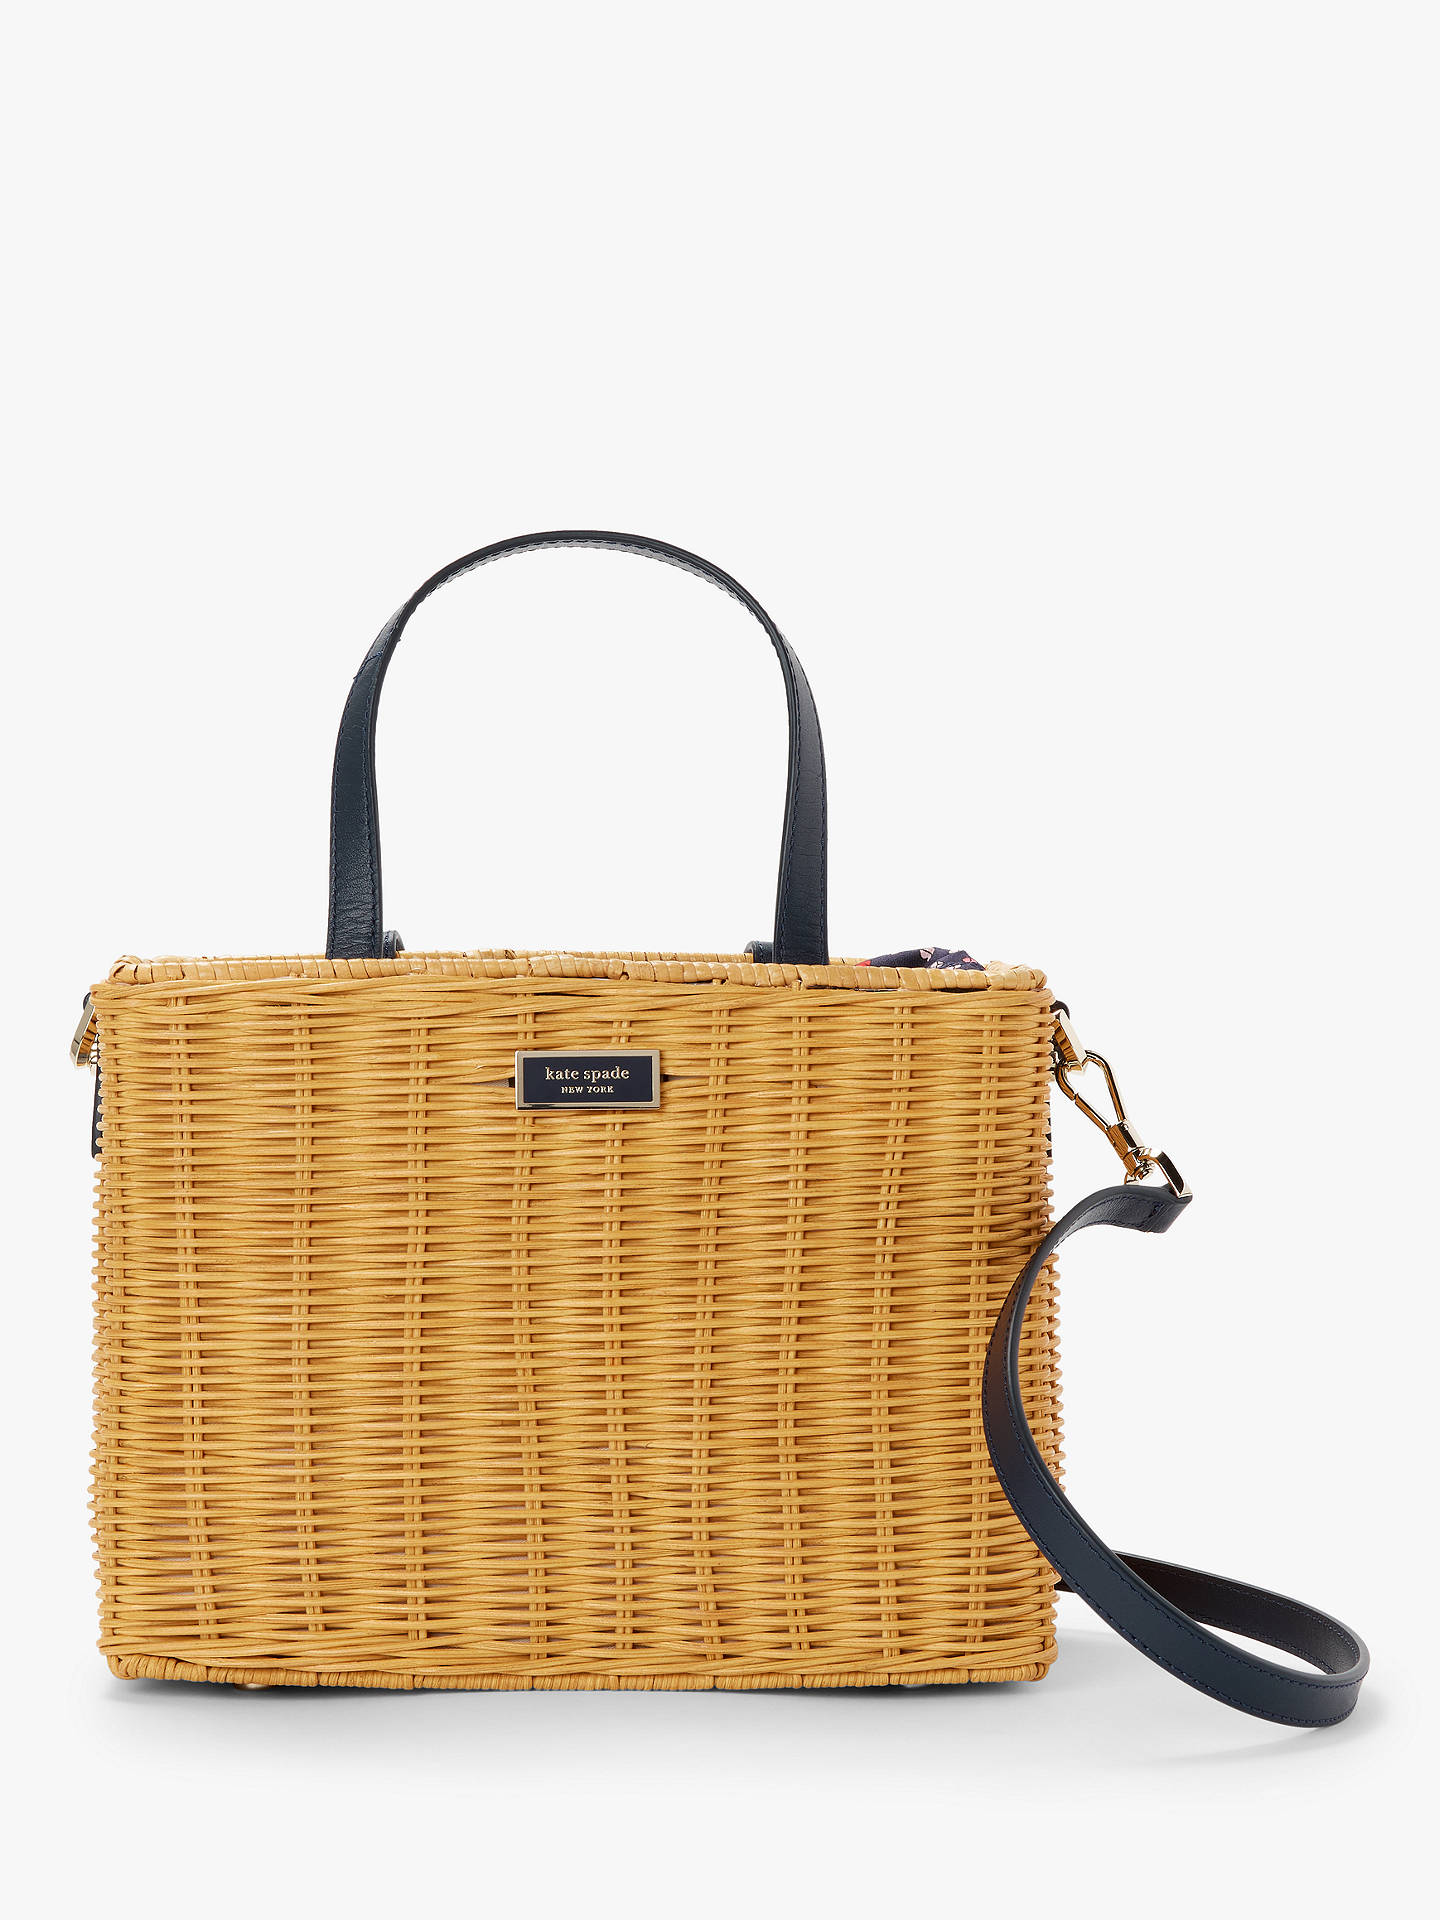 bc6a48e145ad Buy kate spade new york Sam Medium Wicker Basket Bag